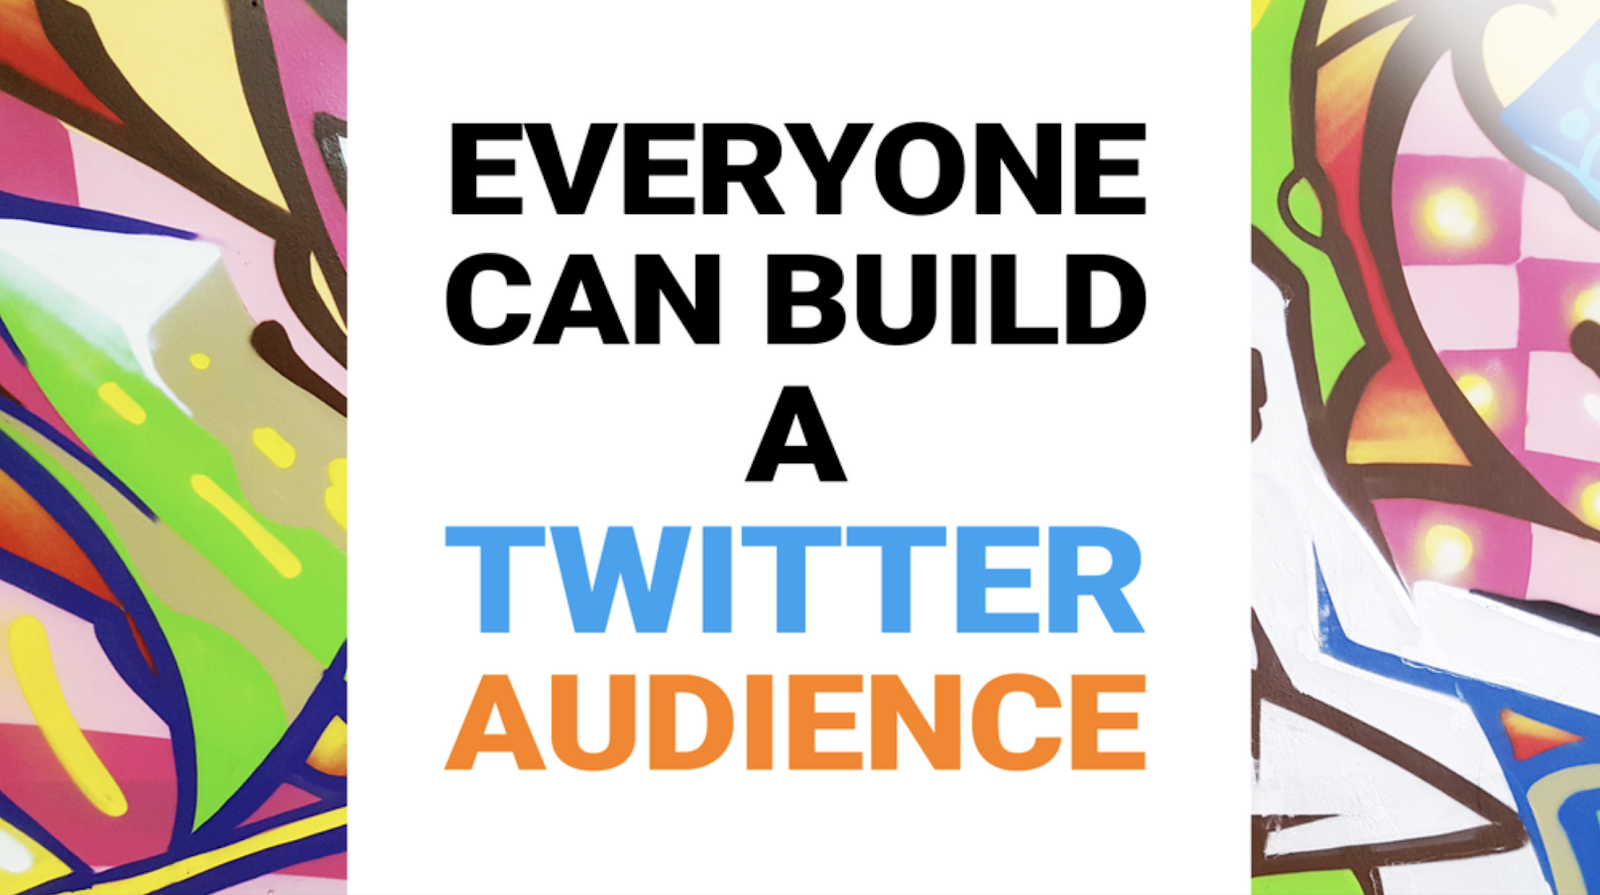 Courses for entrepreneurs #11: Everyone Can Build A Twitter Audience